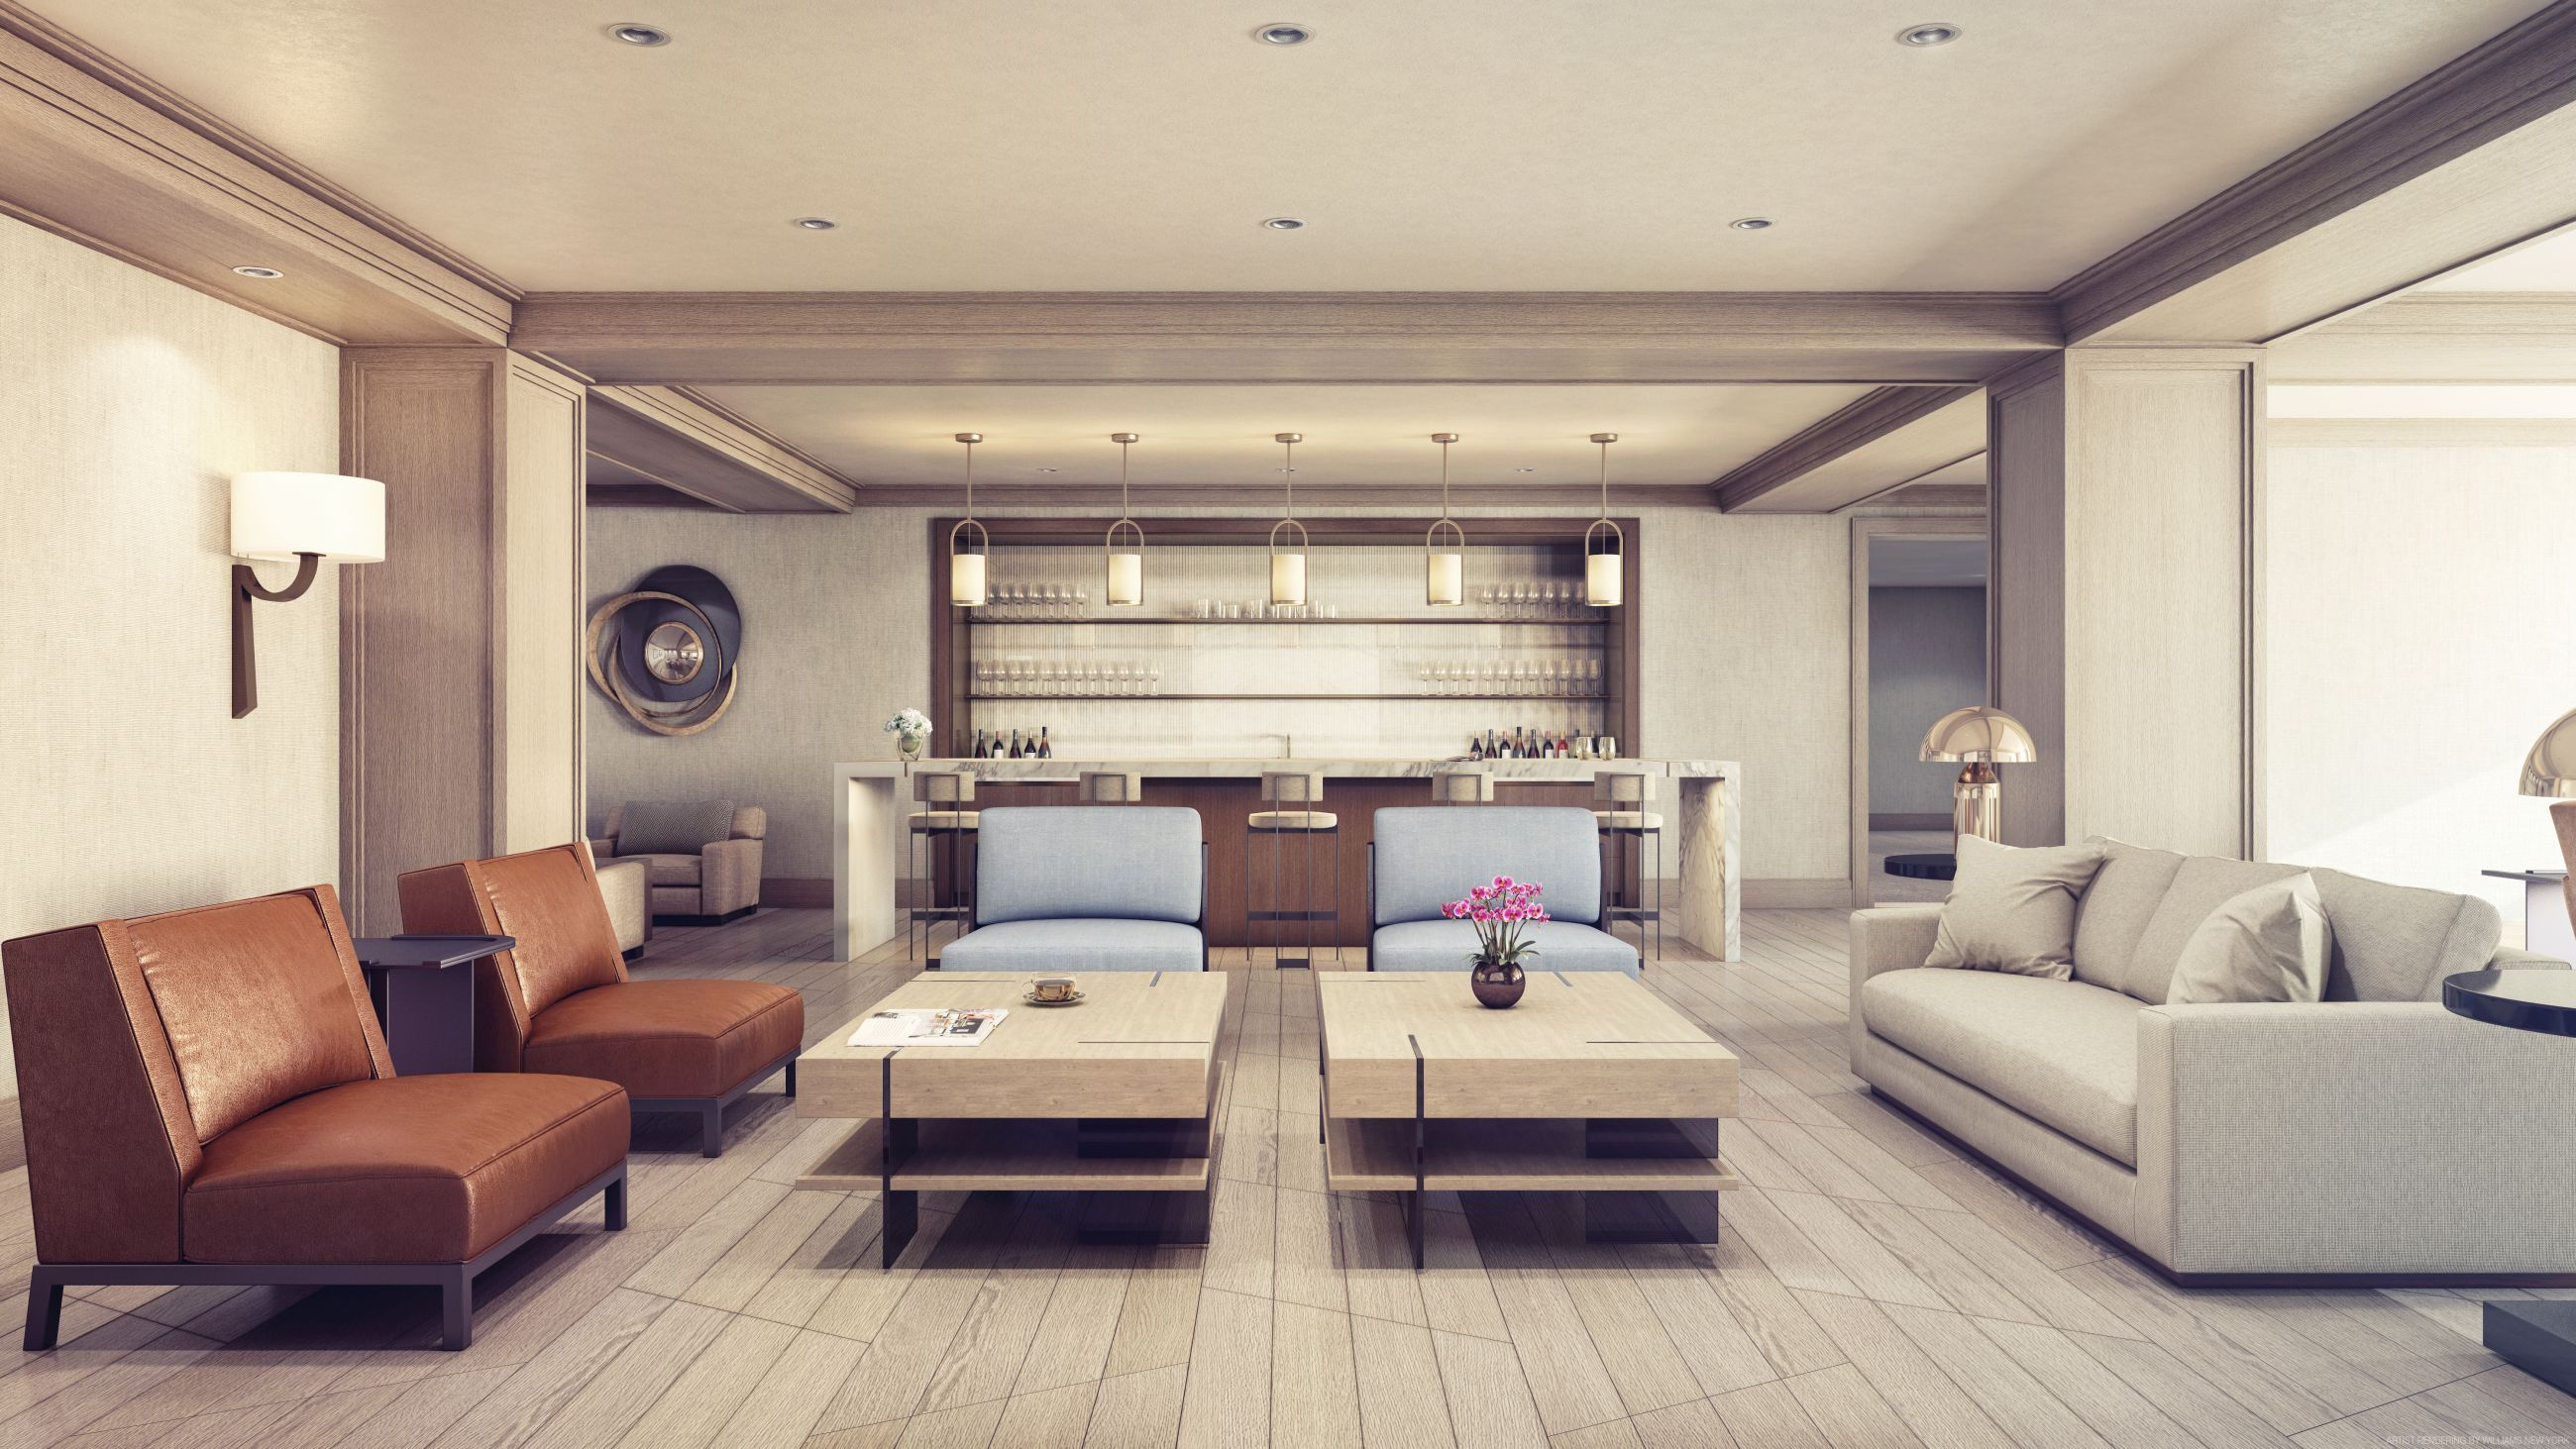 100 Barclay At 100 Barclay St In Tribeca Sales, Rentals,